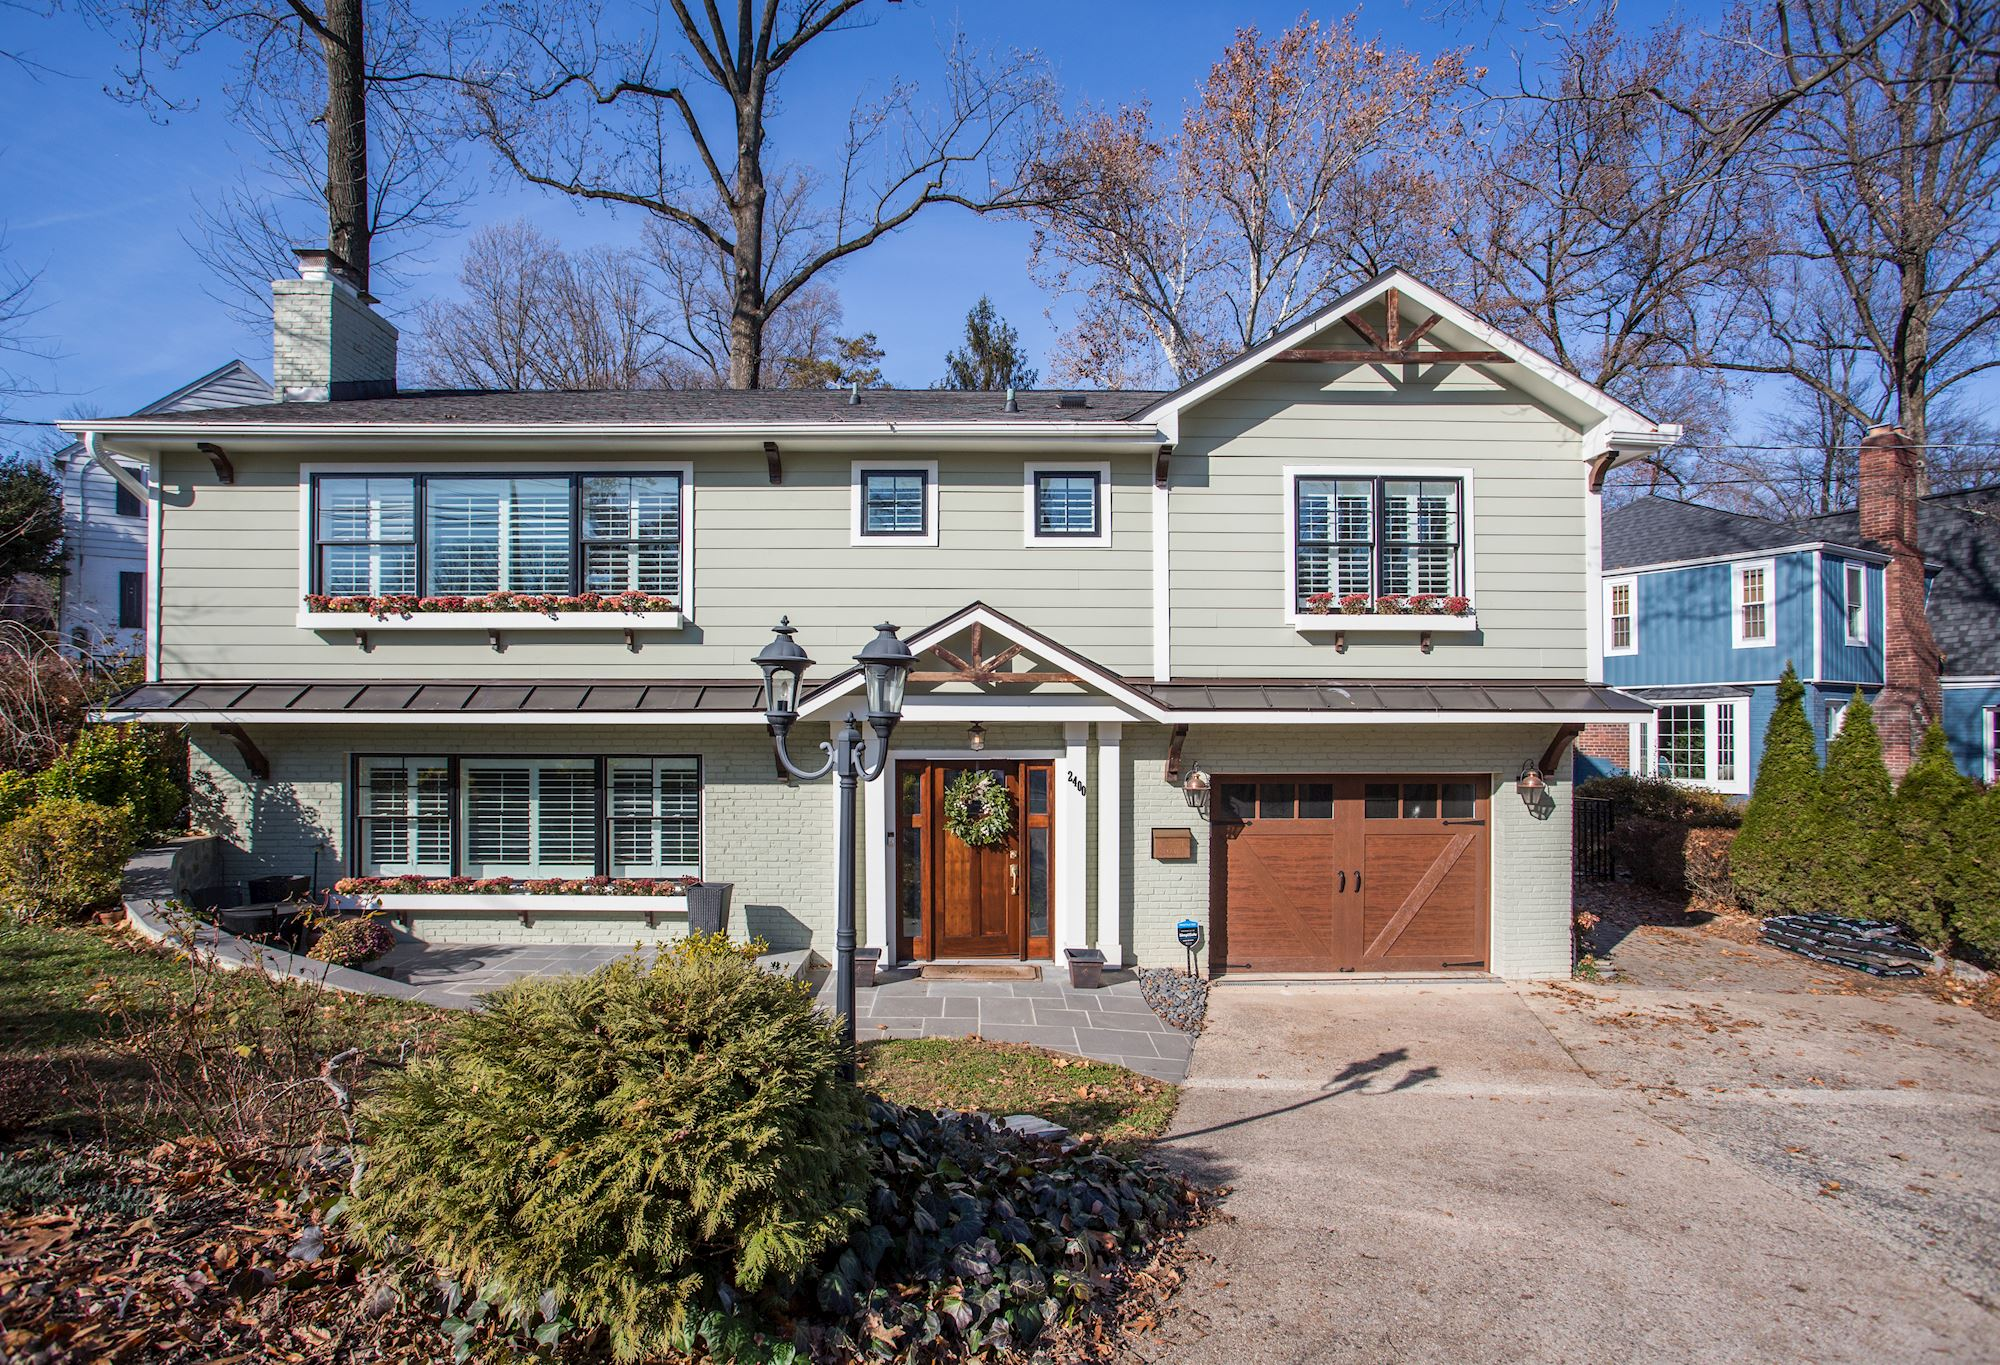 SOLD: 4 BD Single Family in Donaldson Run, North Arlington, VA